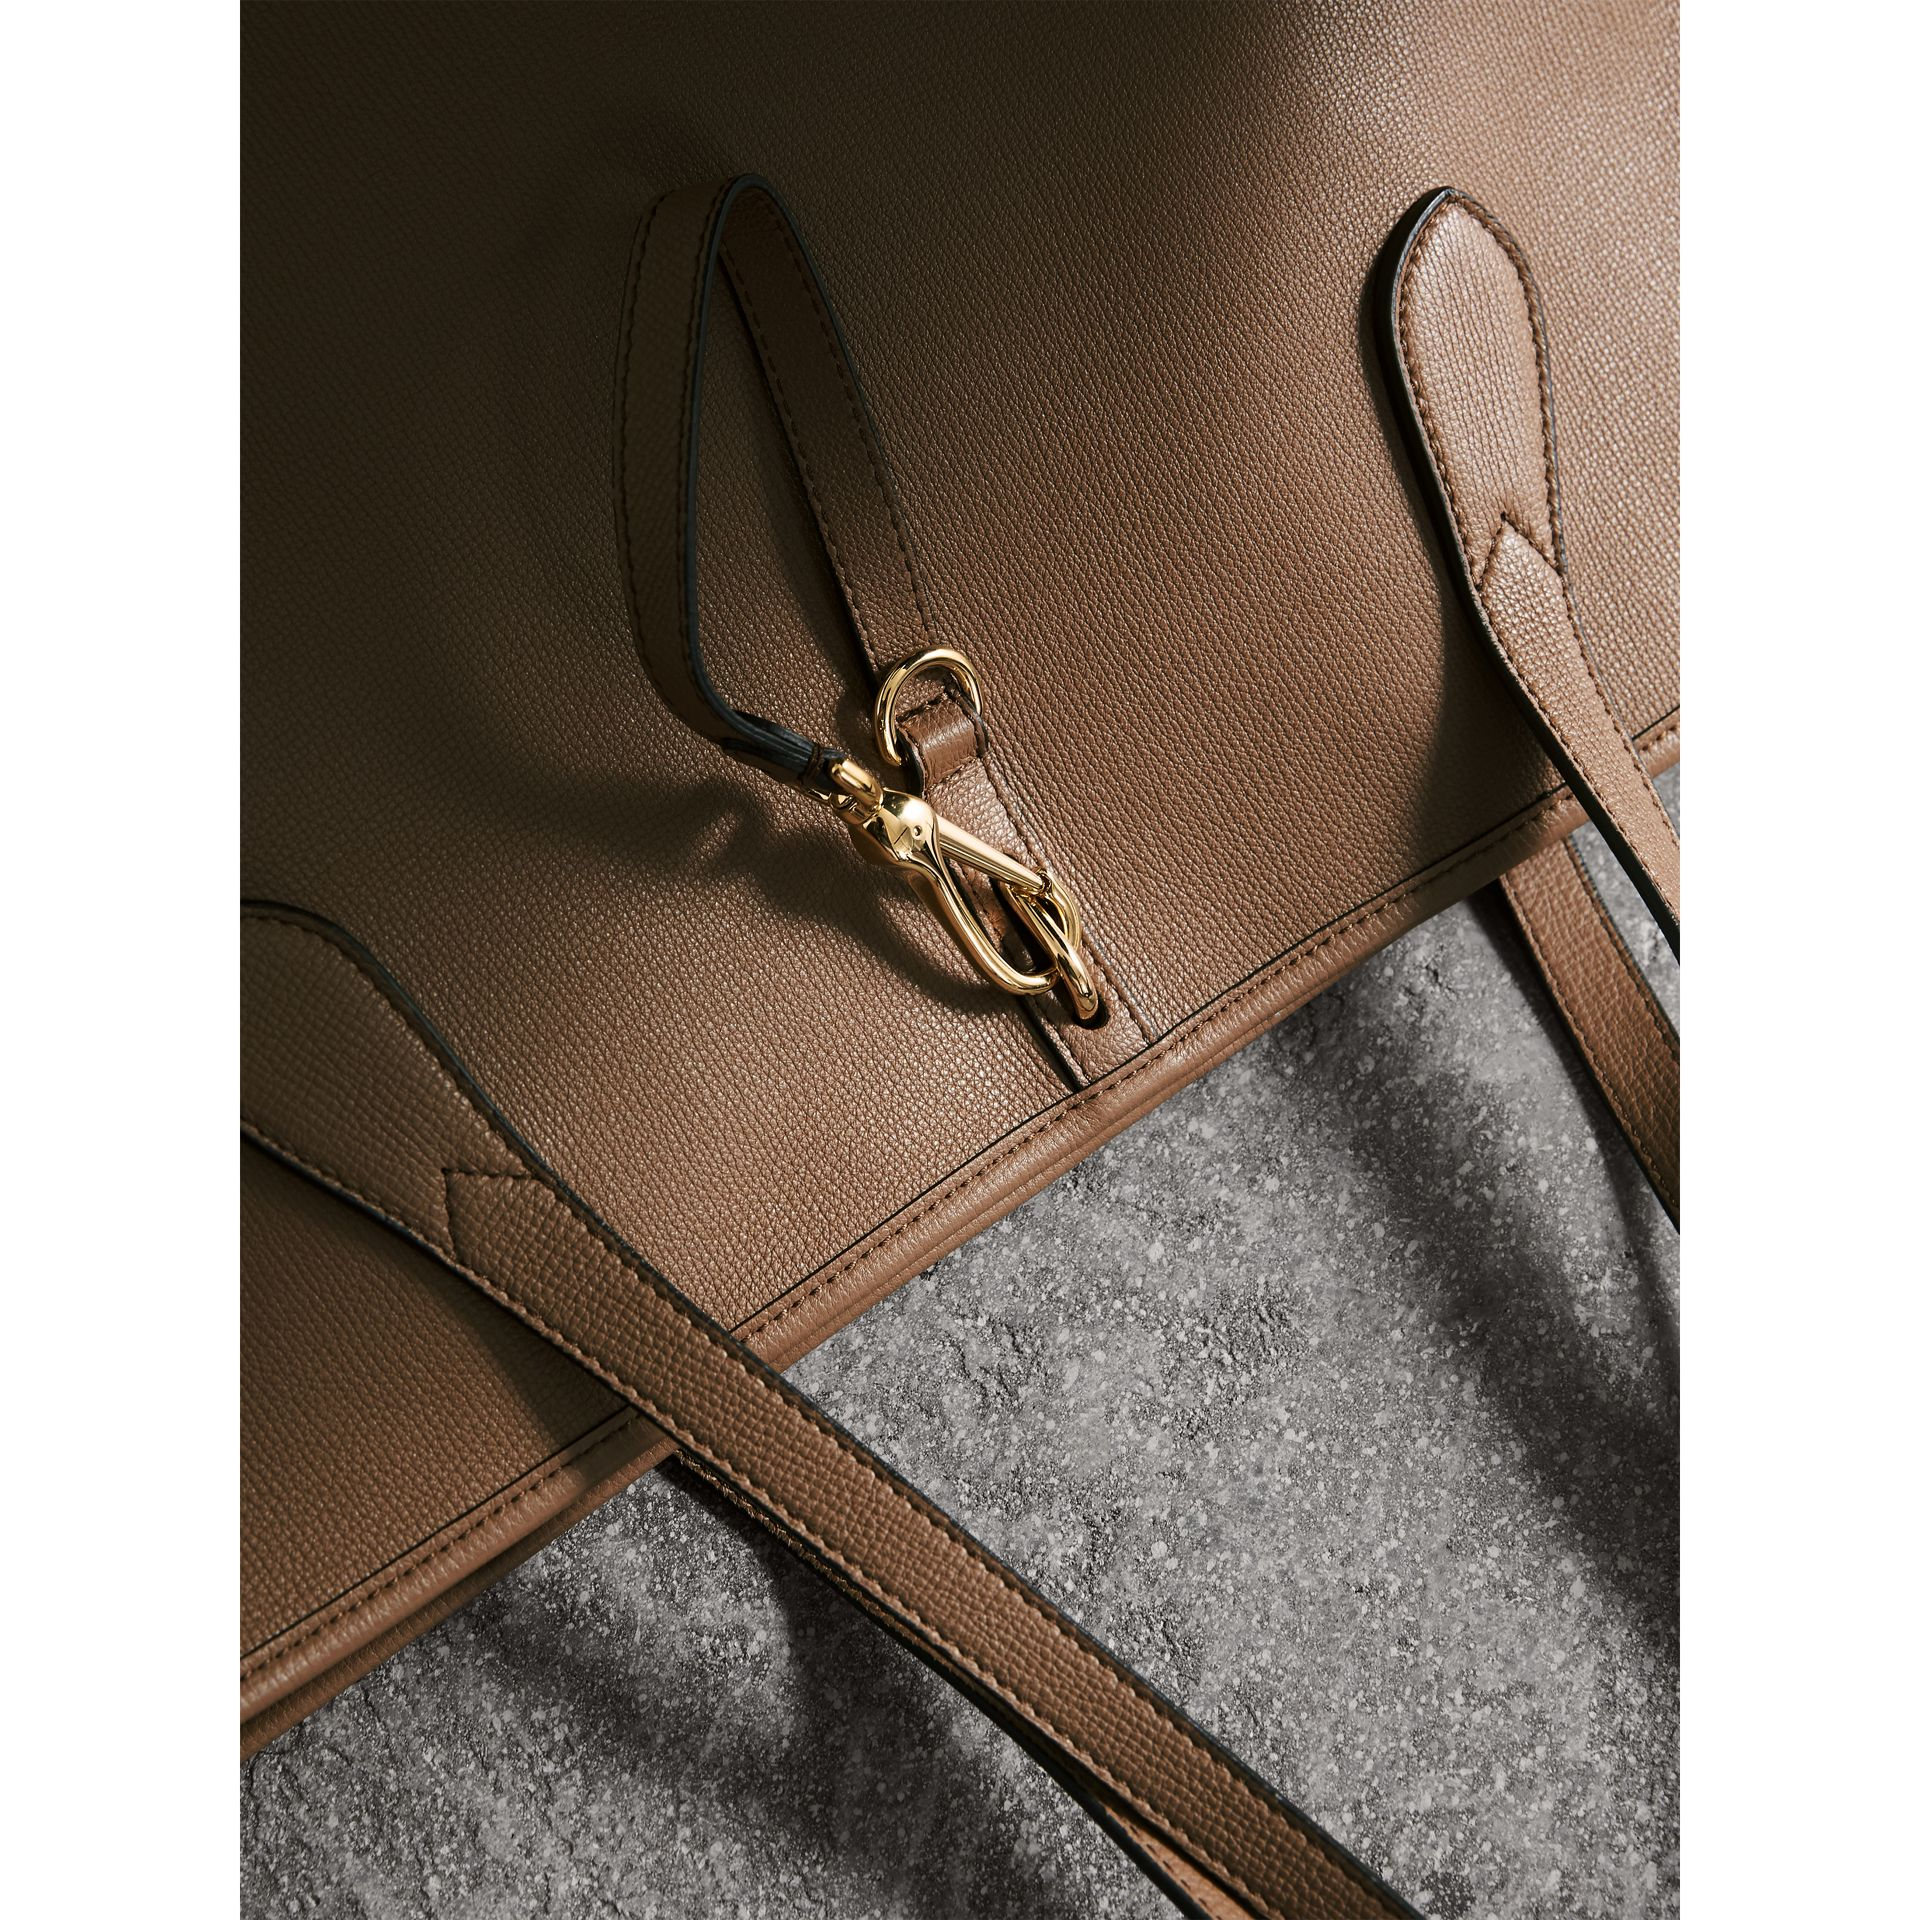 Medium Grainy Leather Tote Bag in Dark Sand - Women | Burberry - gallery image 2